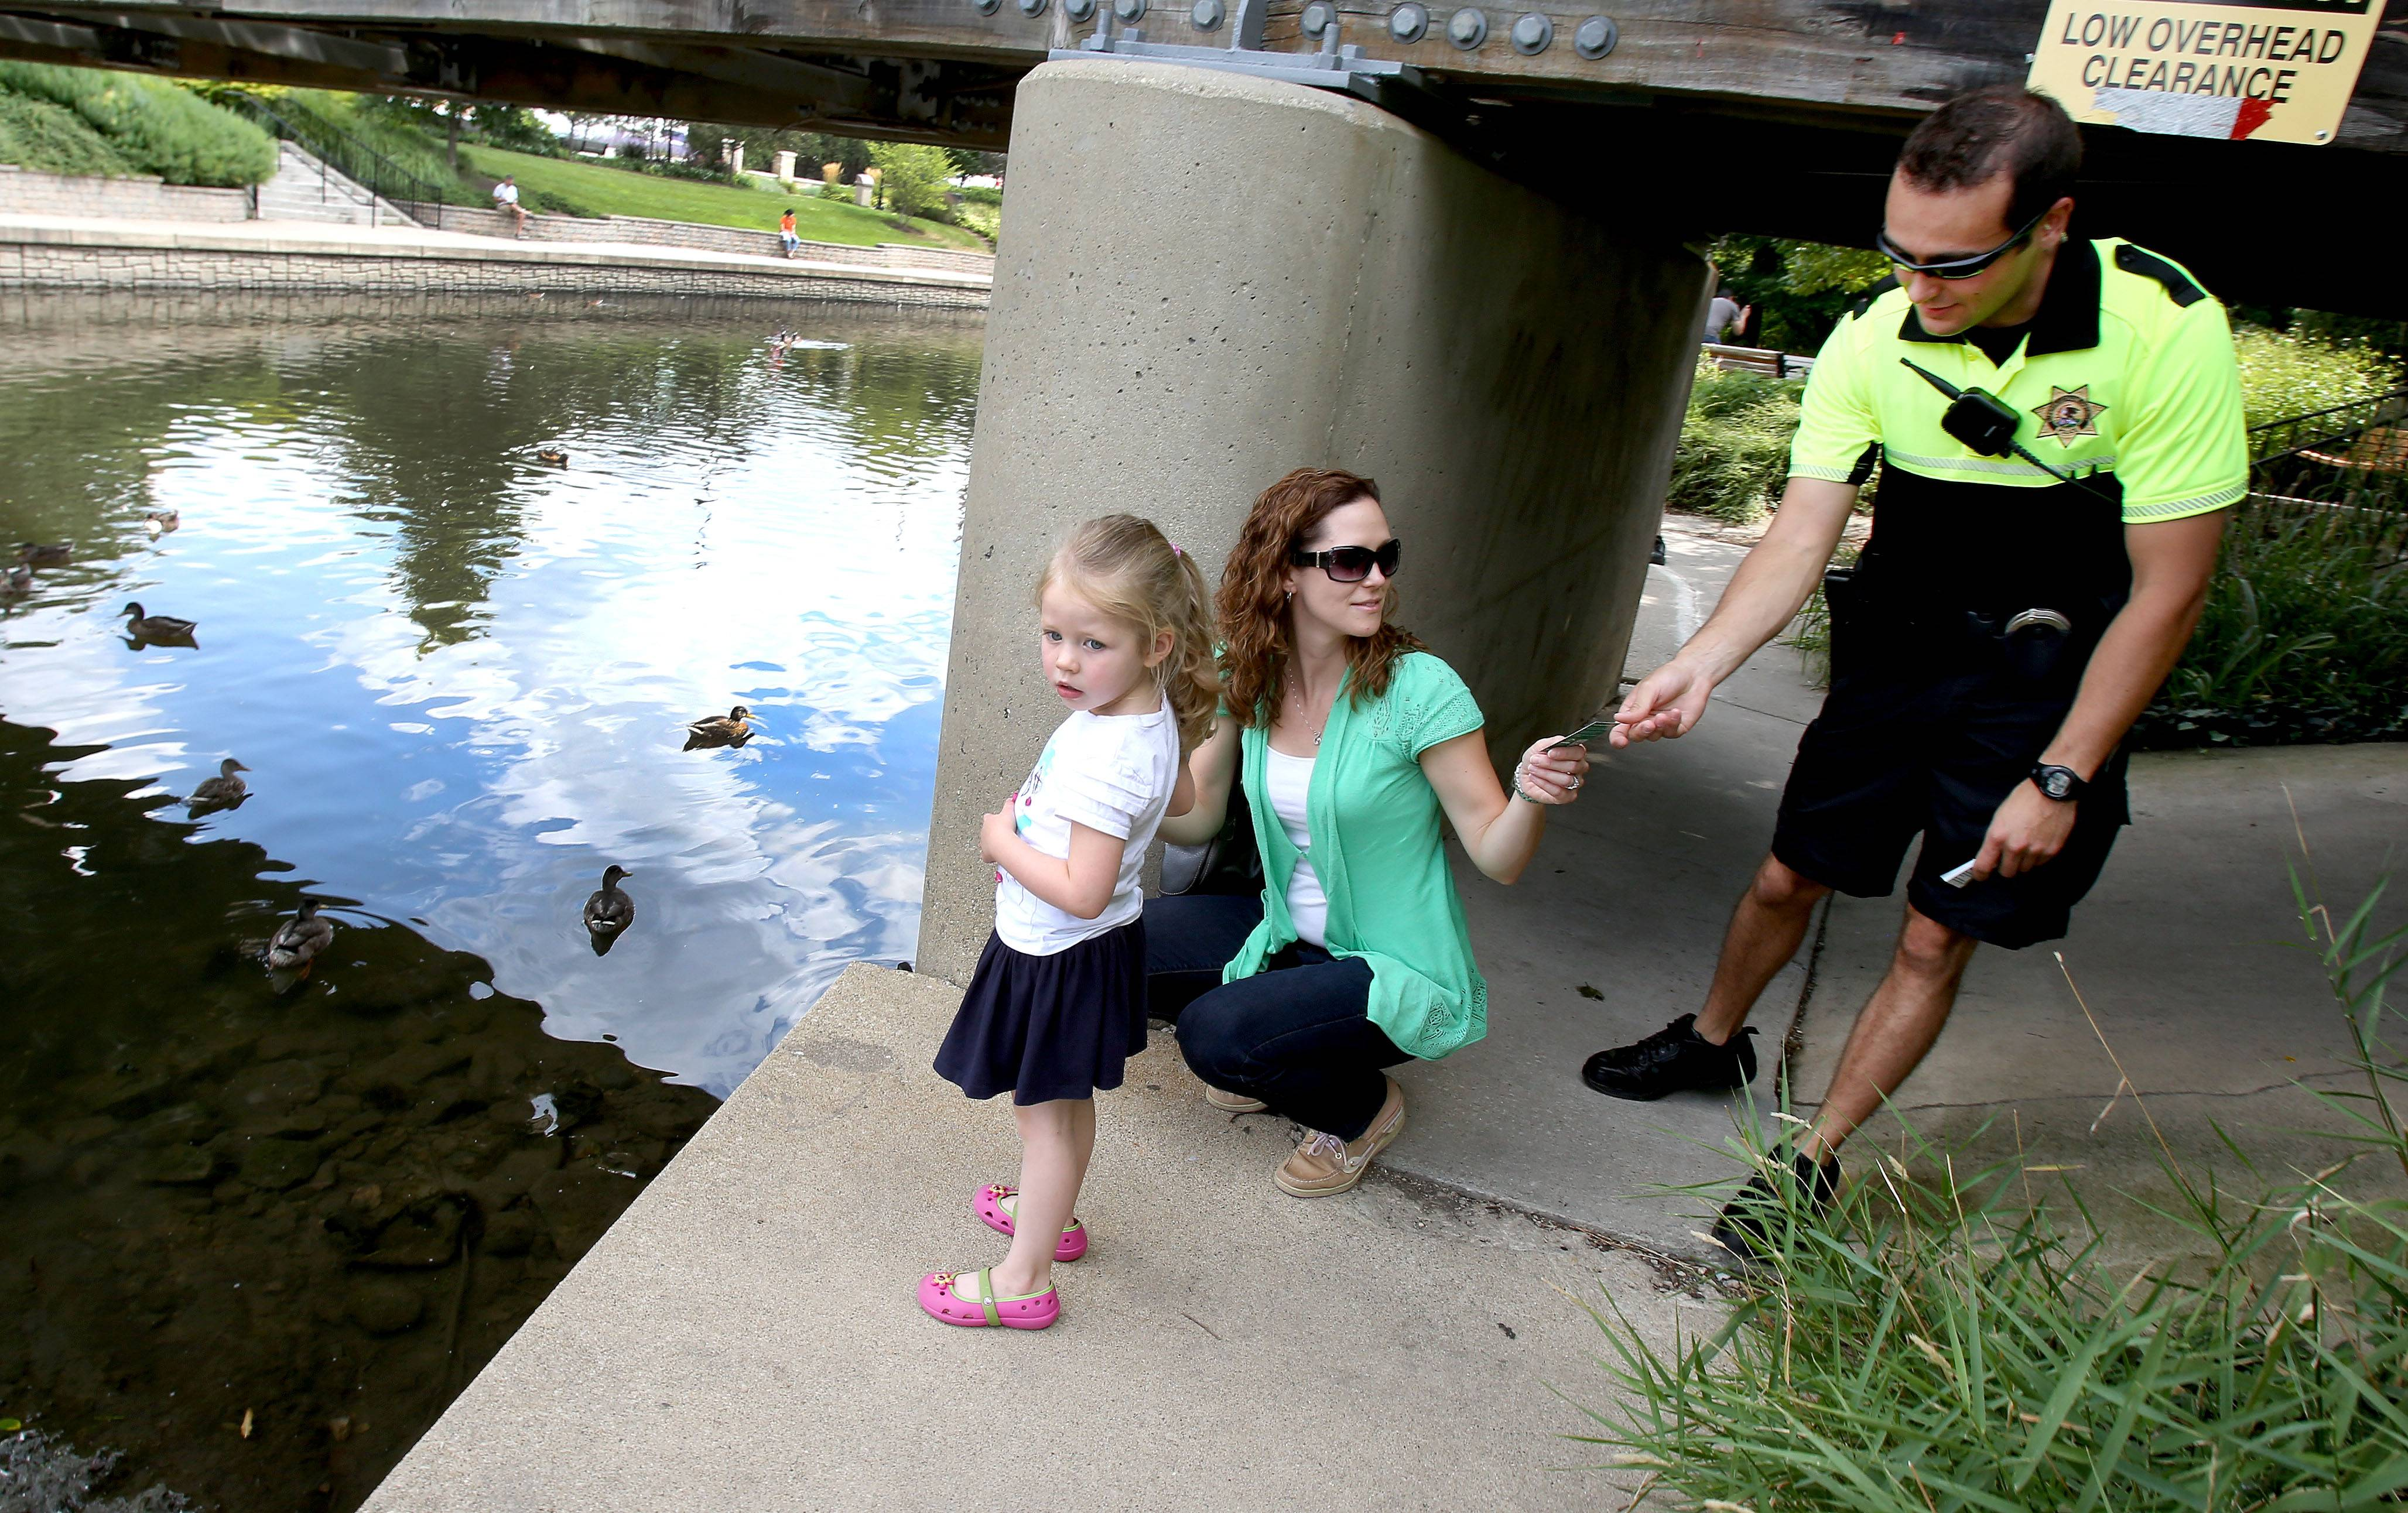 A Naperville resident is suggesting a group of volunteers be formed to join Naperville Park District police in educating the public about the hazards of feeding ducks and geese along the Riverwalk. Park district police officers have been handing out River Wildlife Cards with facts about the harmful effects of human food on waterfowl for almost a year.